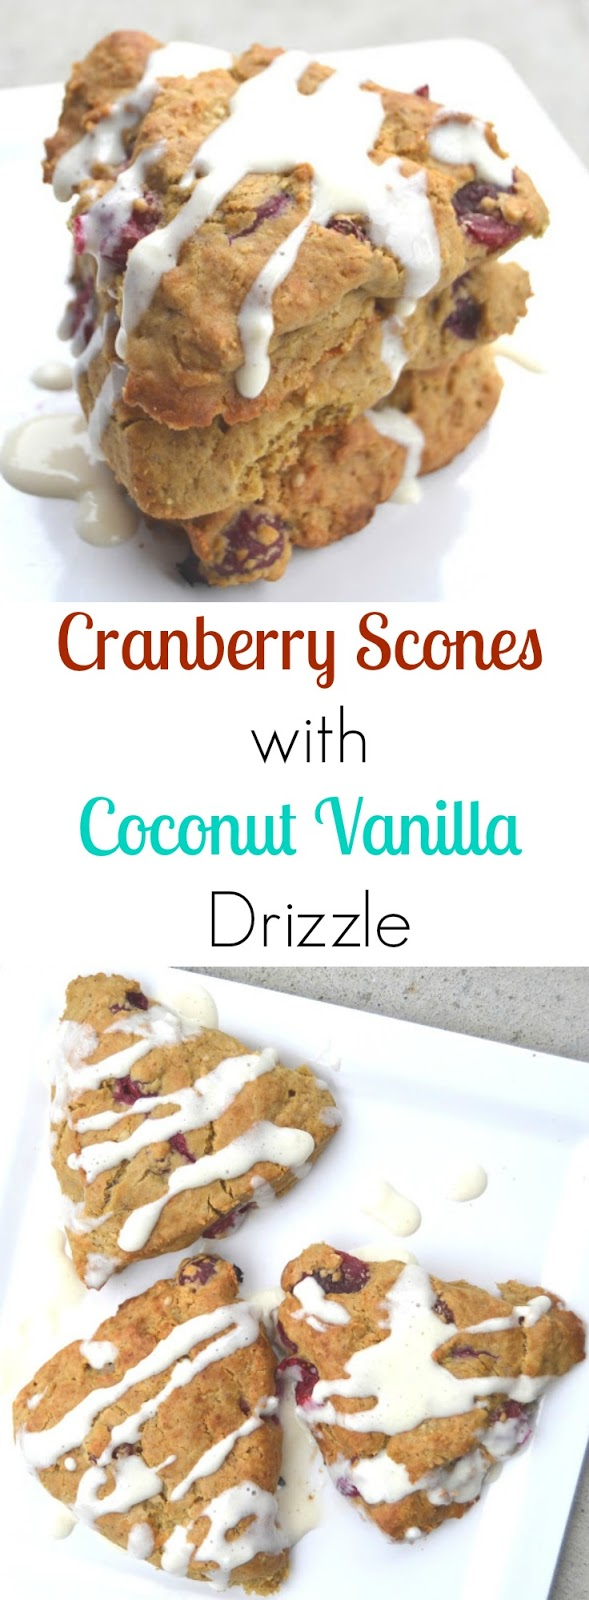 These Cranberry Scones with Coconut Vanilla Drizzle are made healthier with whole-wheat flour, yogurt, fresh cranberries and a healthier yogurt based drizzle! www.nutritionistreviews.com